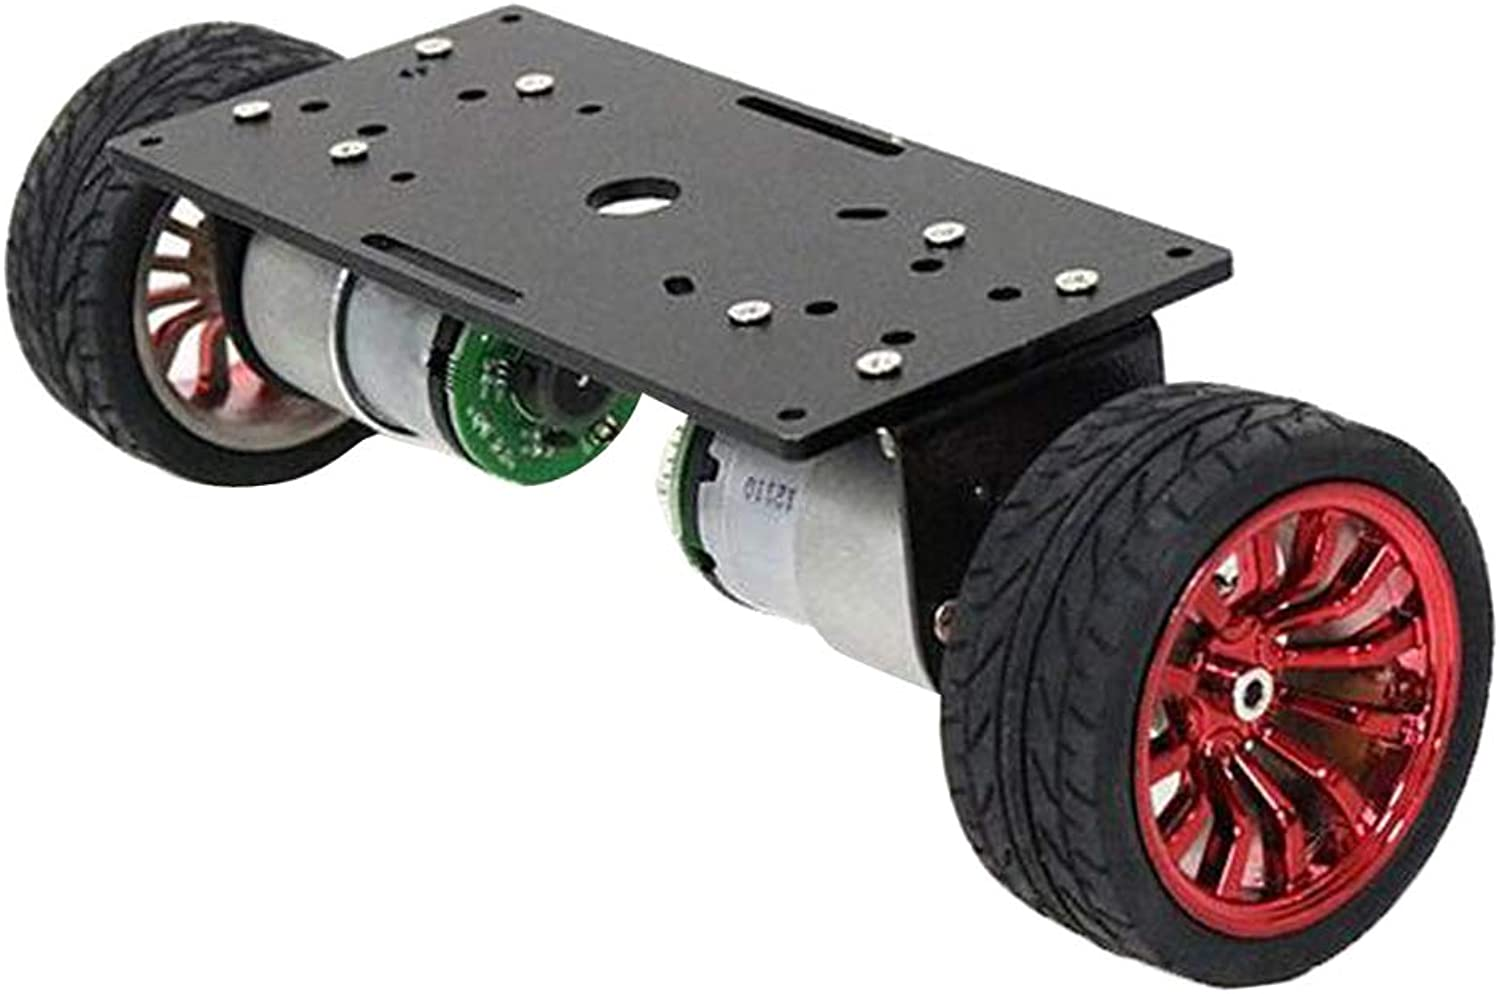 D DOLITY Motor Robot Car Chassis Kit (Two Wheels)  with Speed Encoder  for Robotics Learning, Great Gift